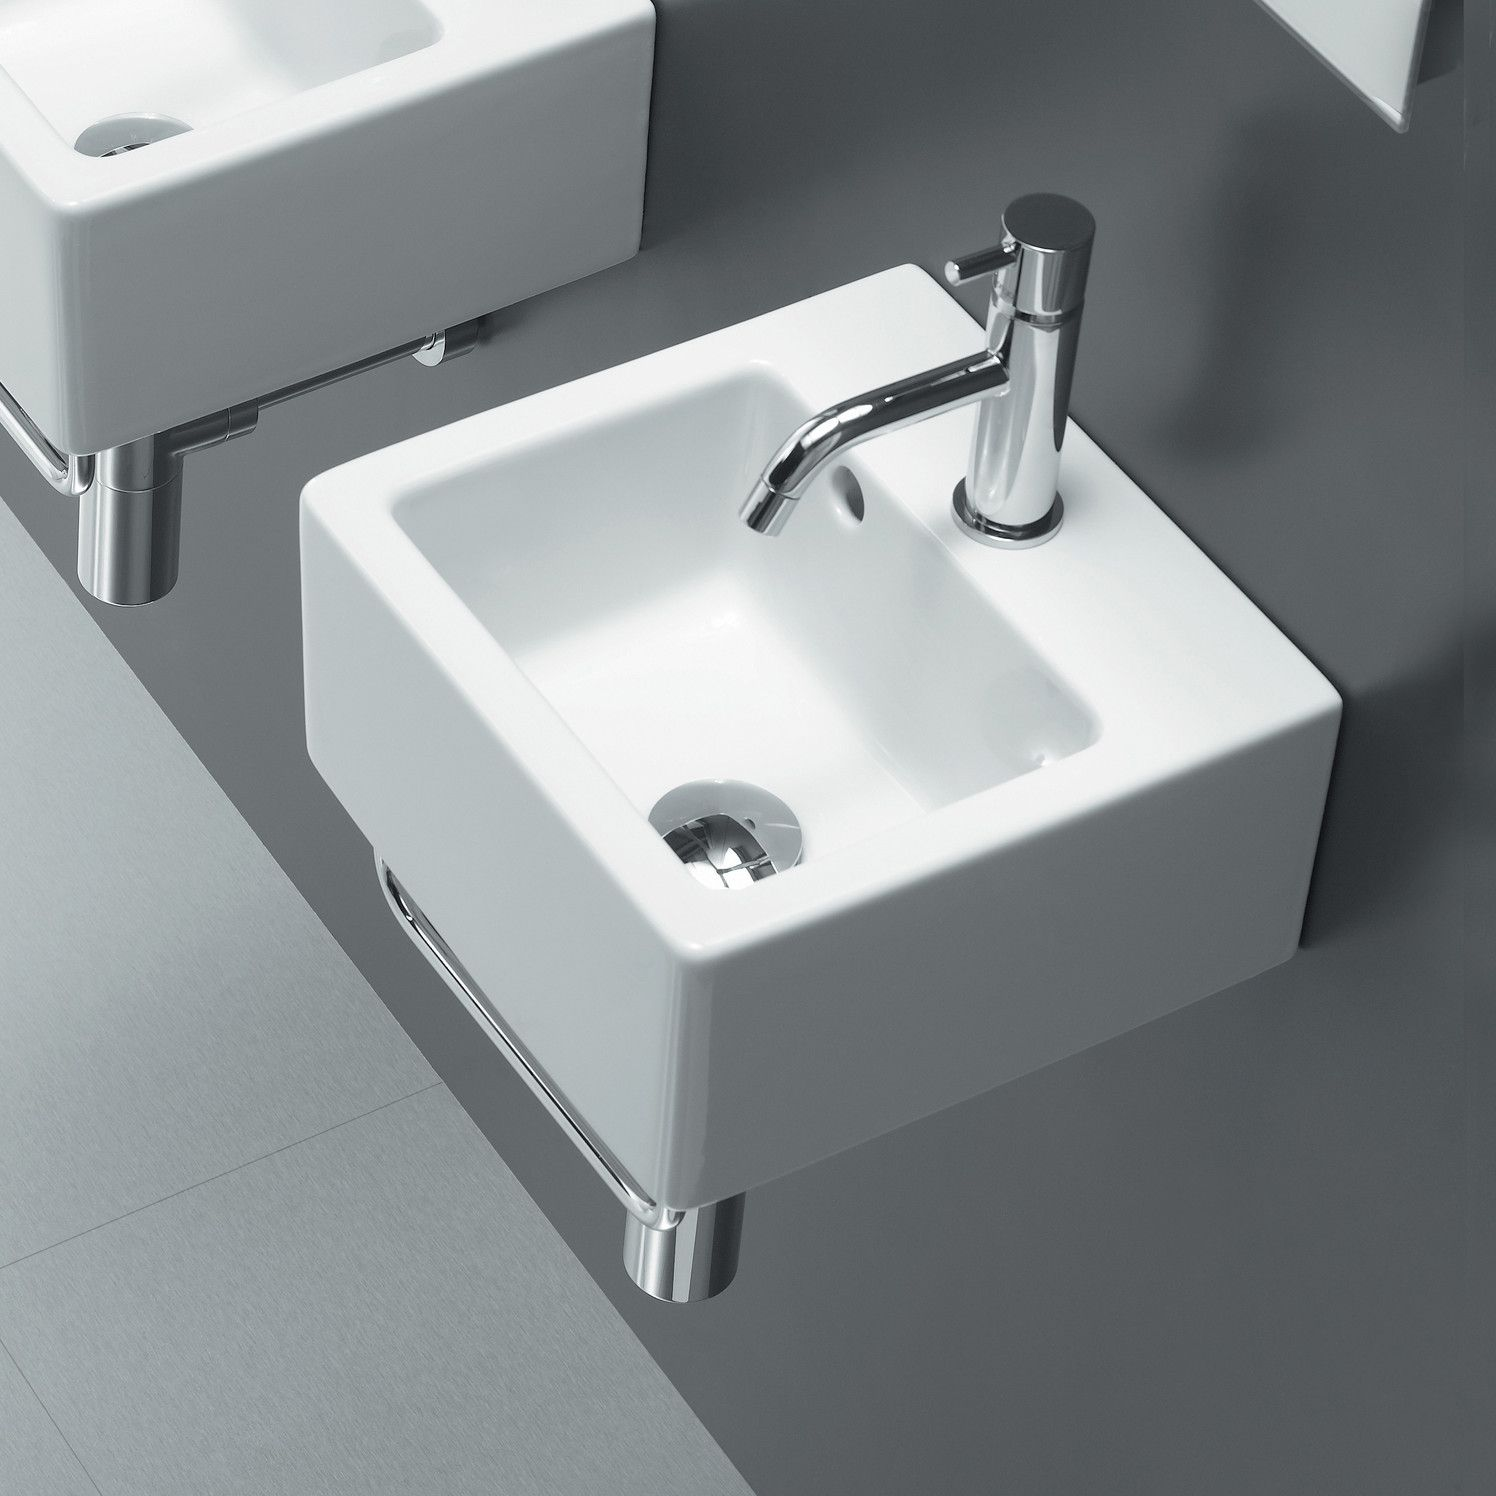 Bissonnet Area Boutique Ice Small Square Ceramic Bathroom Sink Ceramic Bathroom Sink Wall Mounted Bathroom Sinks Sink